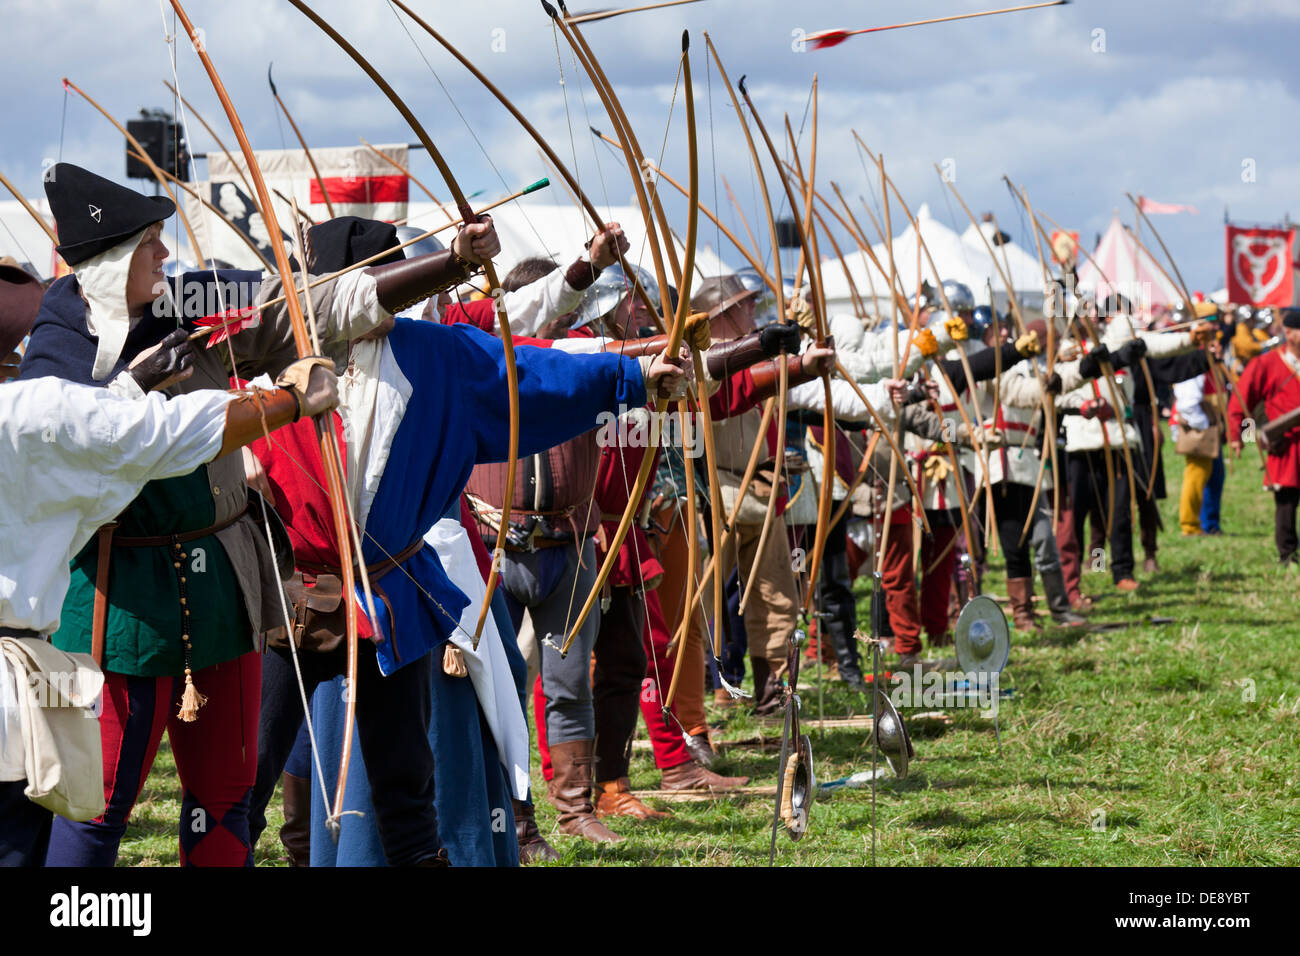 Archers firing in Wars of the Roses Federation re-enact the Battle of Bosworth  Hinckley Leicestershire England - Stock Image